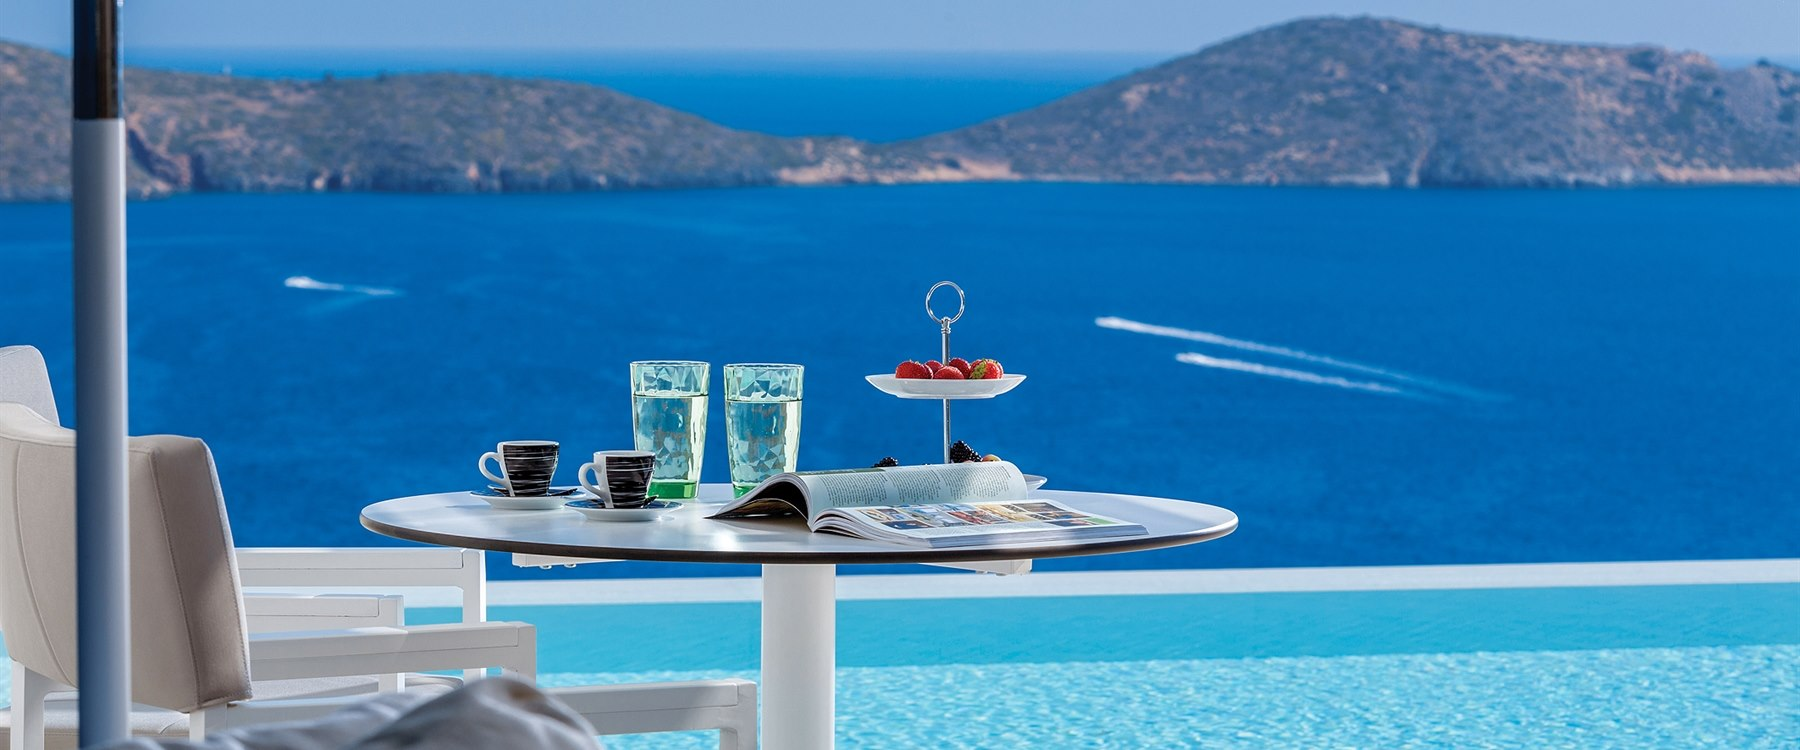 pool with a view at Elounda Gulf Villas & Suites